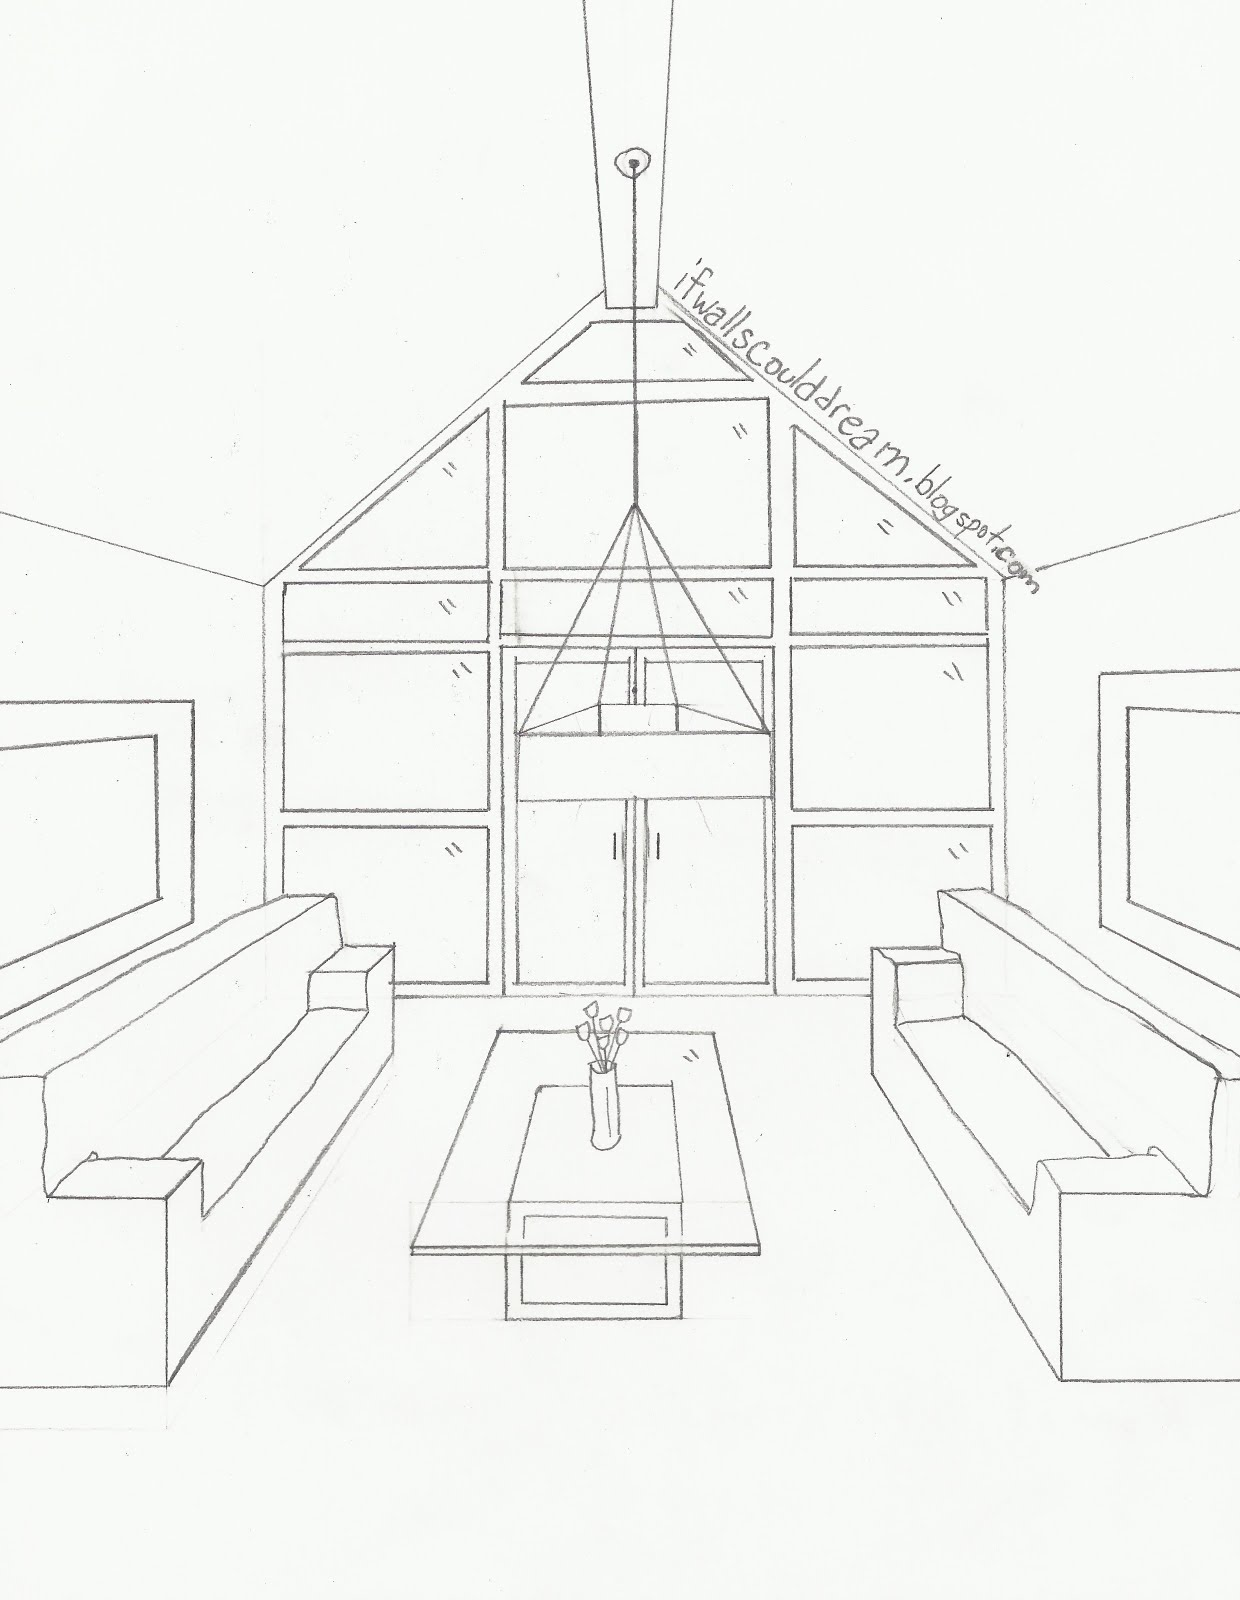 Kitchen perspective drawing - Image